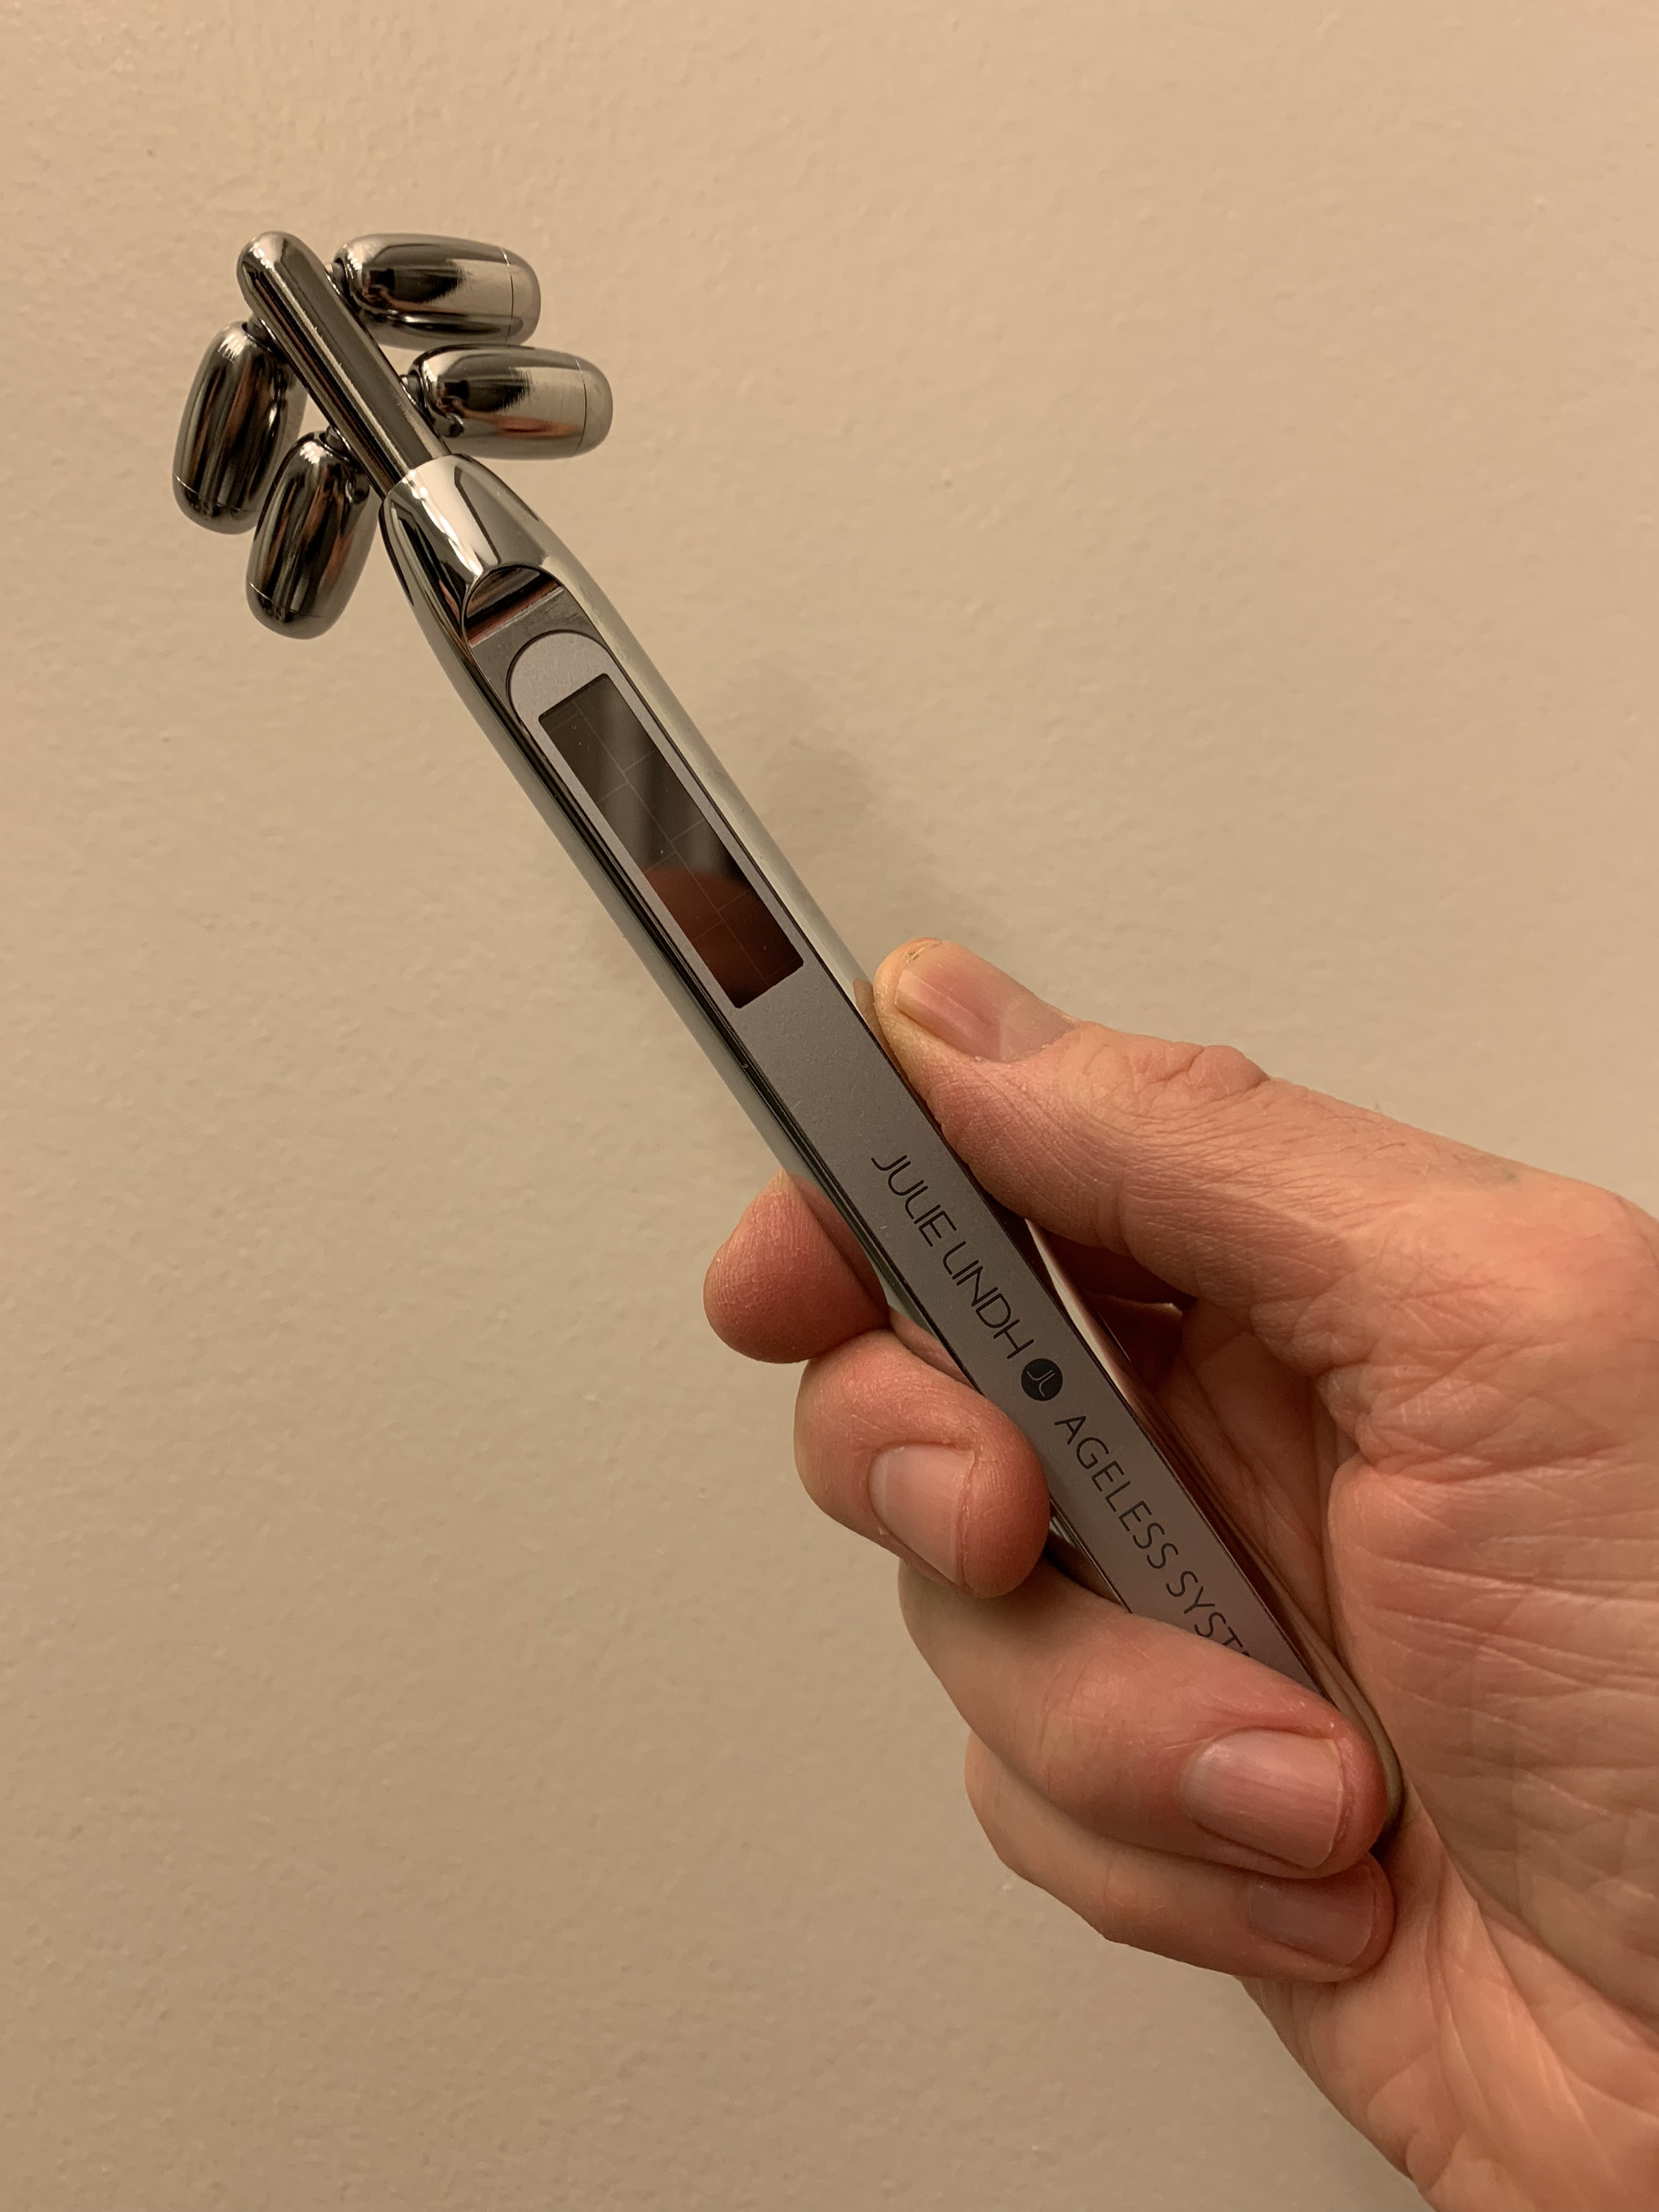 Bonus Step! I try to use the  Ageless Beauty Wand  from Julie Lindh each night. It's like a futuristic jade roller that uses micro-current to stimulate and tone the skin. And it's cool AF!